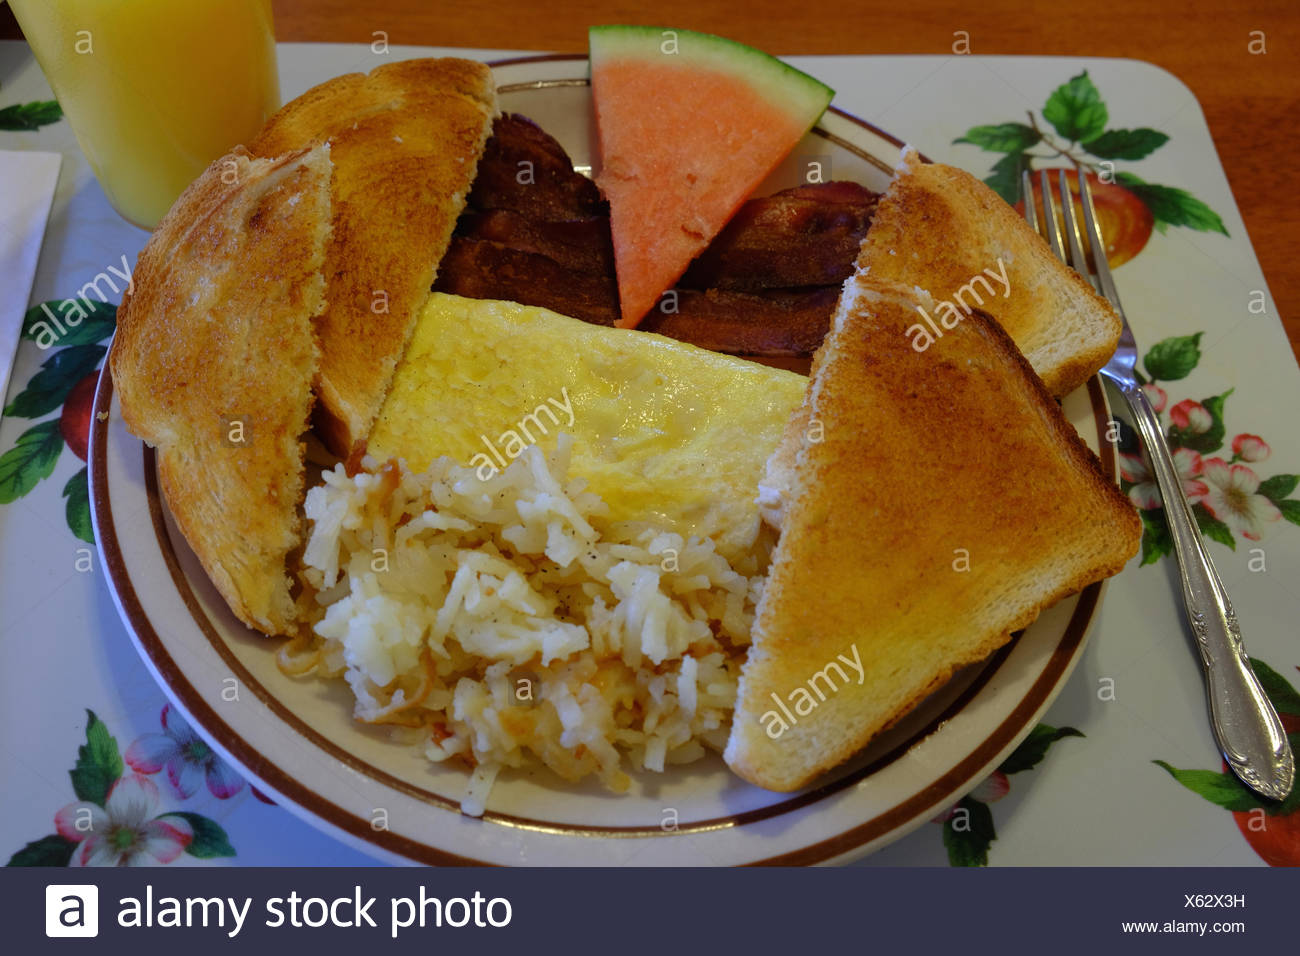 A breakfast of toast, bacon, egg omelet, hash browns, watermelon and orange juice. - Stock Image